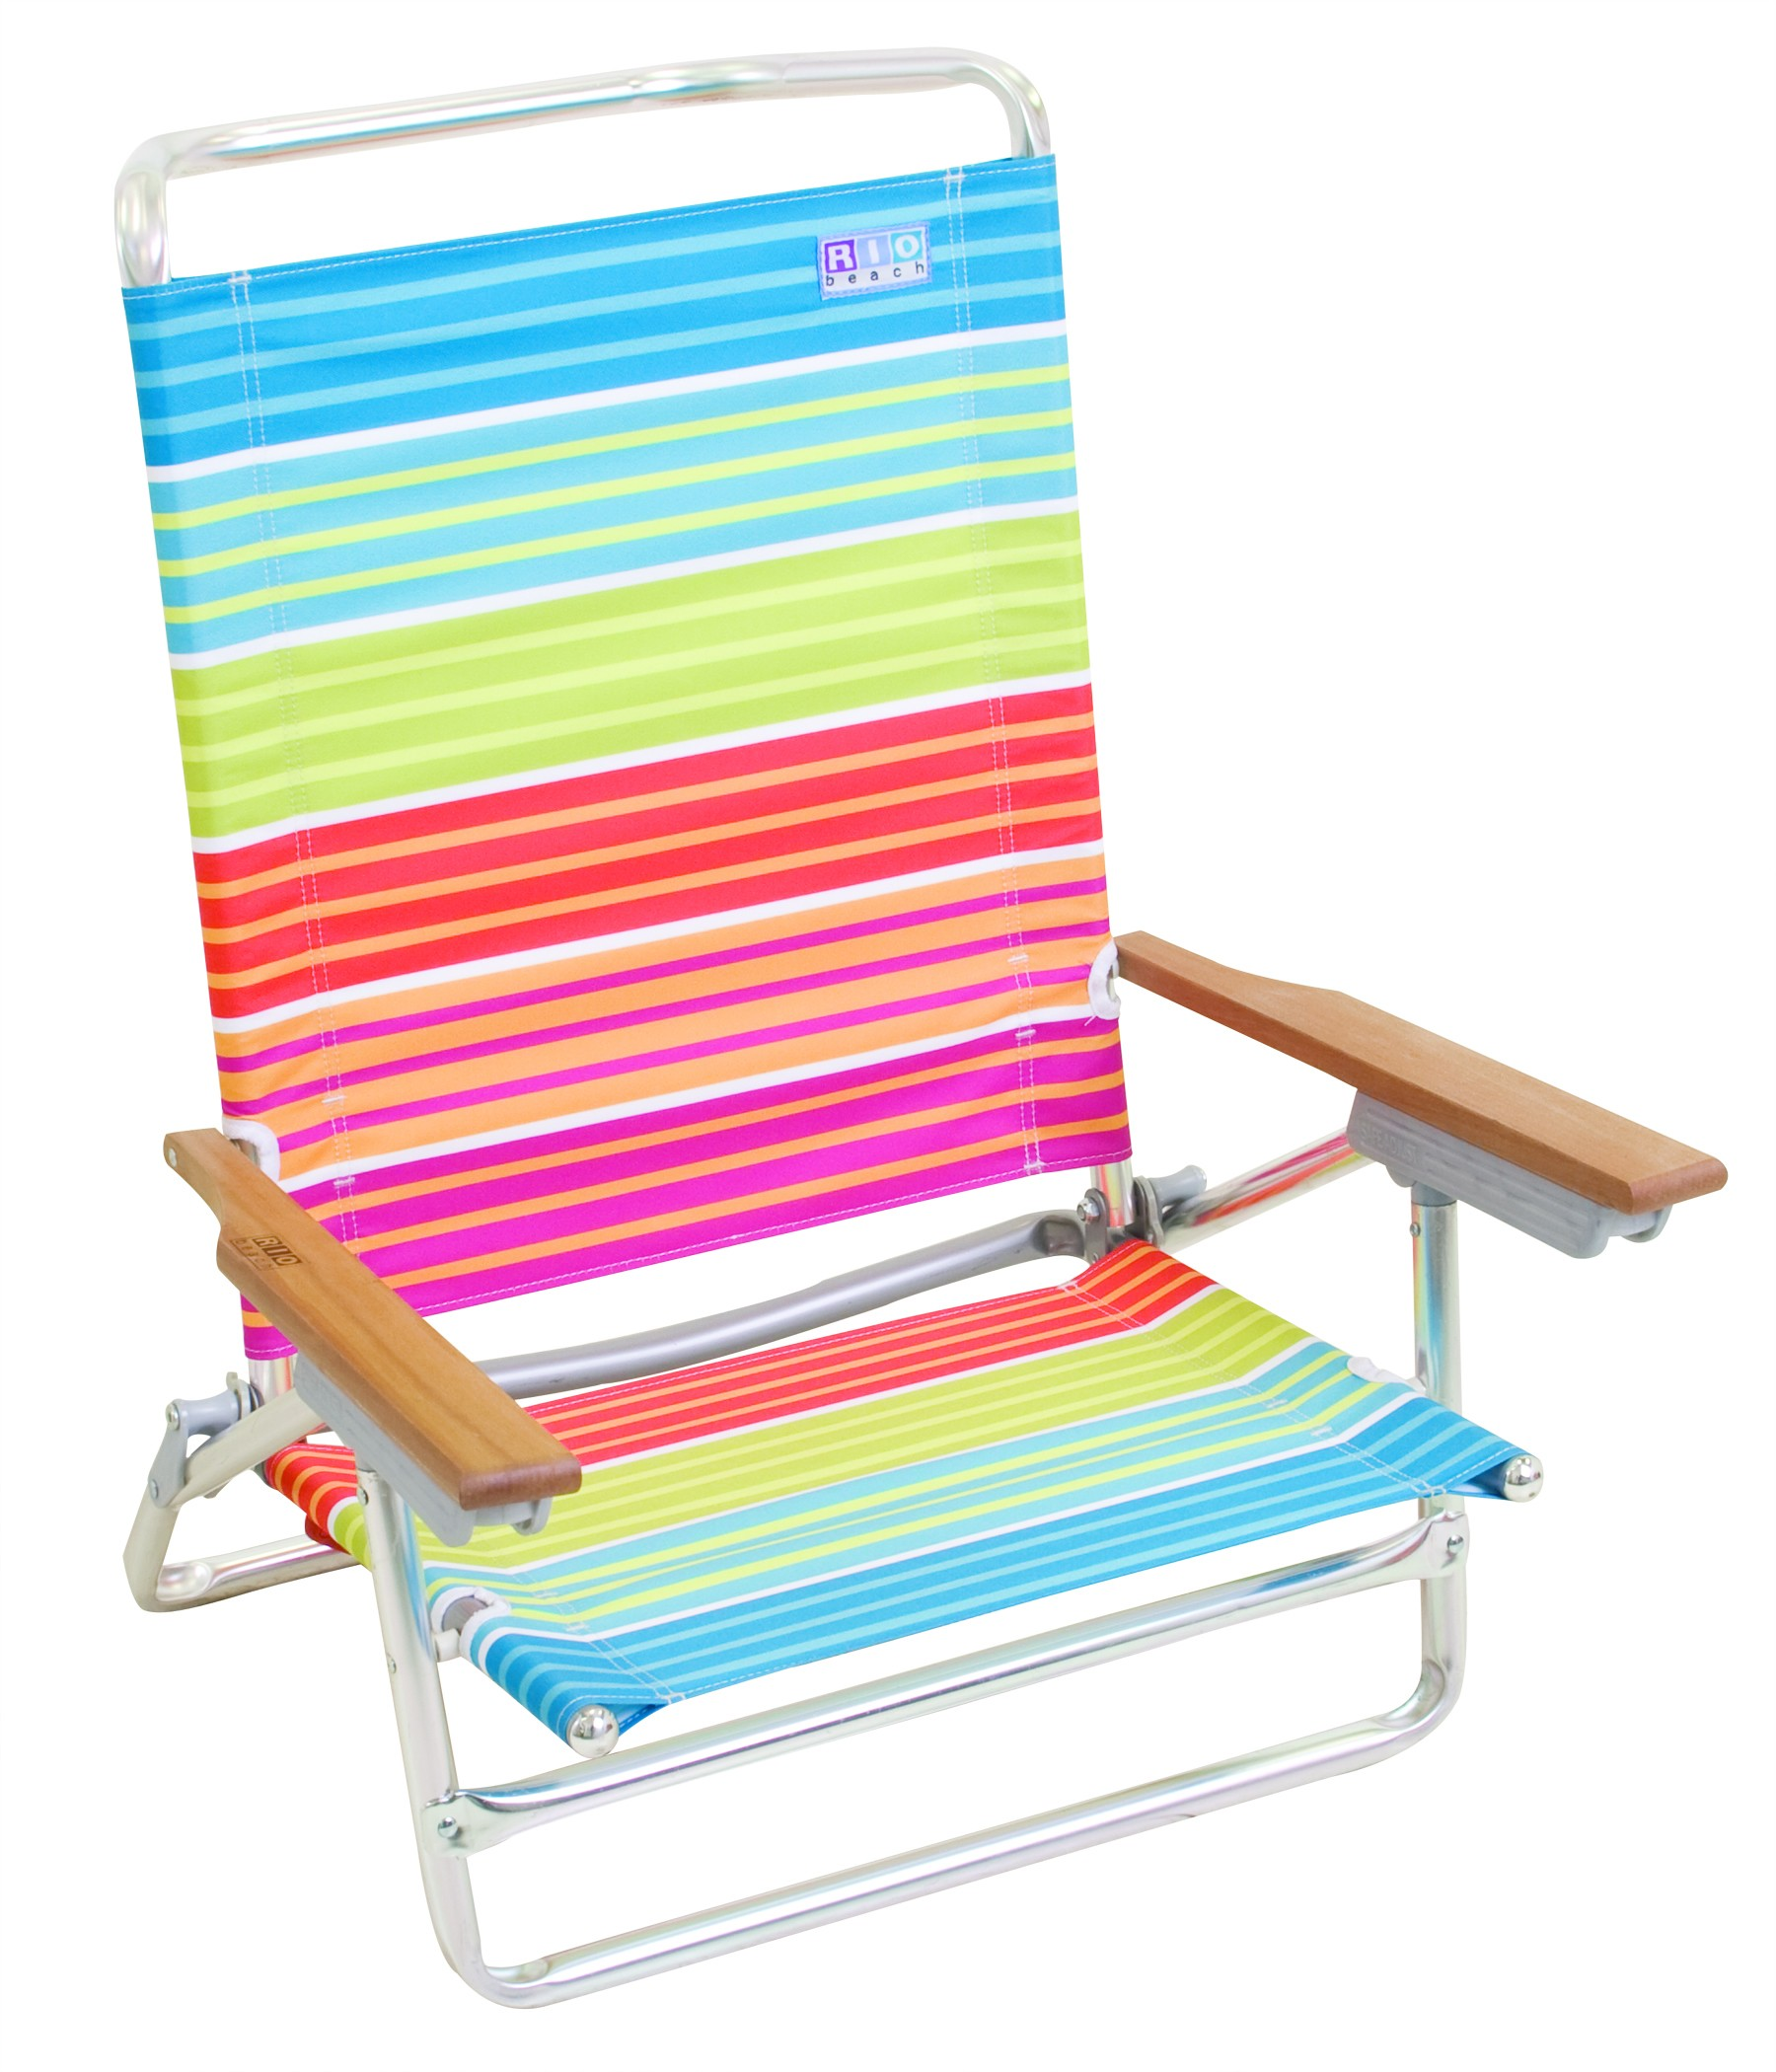 high back beach chair best chairs for posture reddit camping station adjusts to 5 position